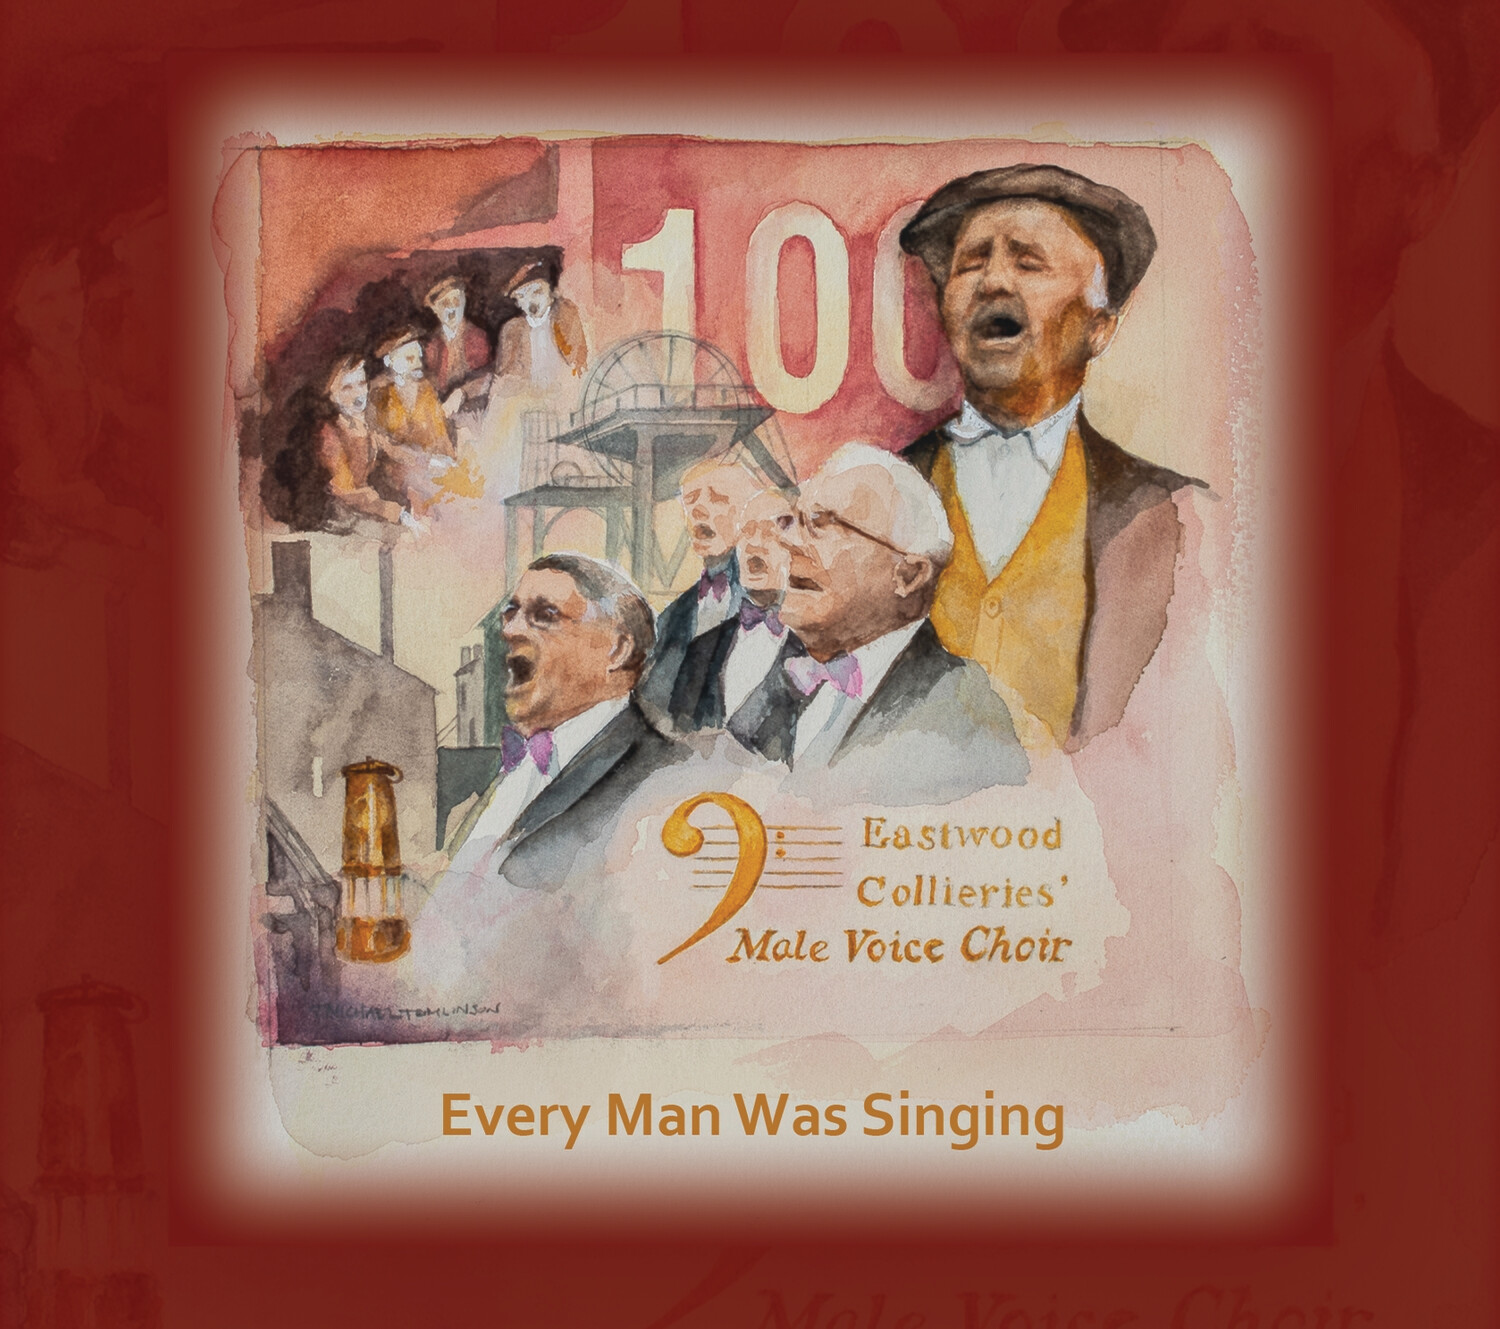 Every Man Was Singing